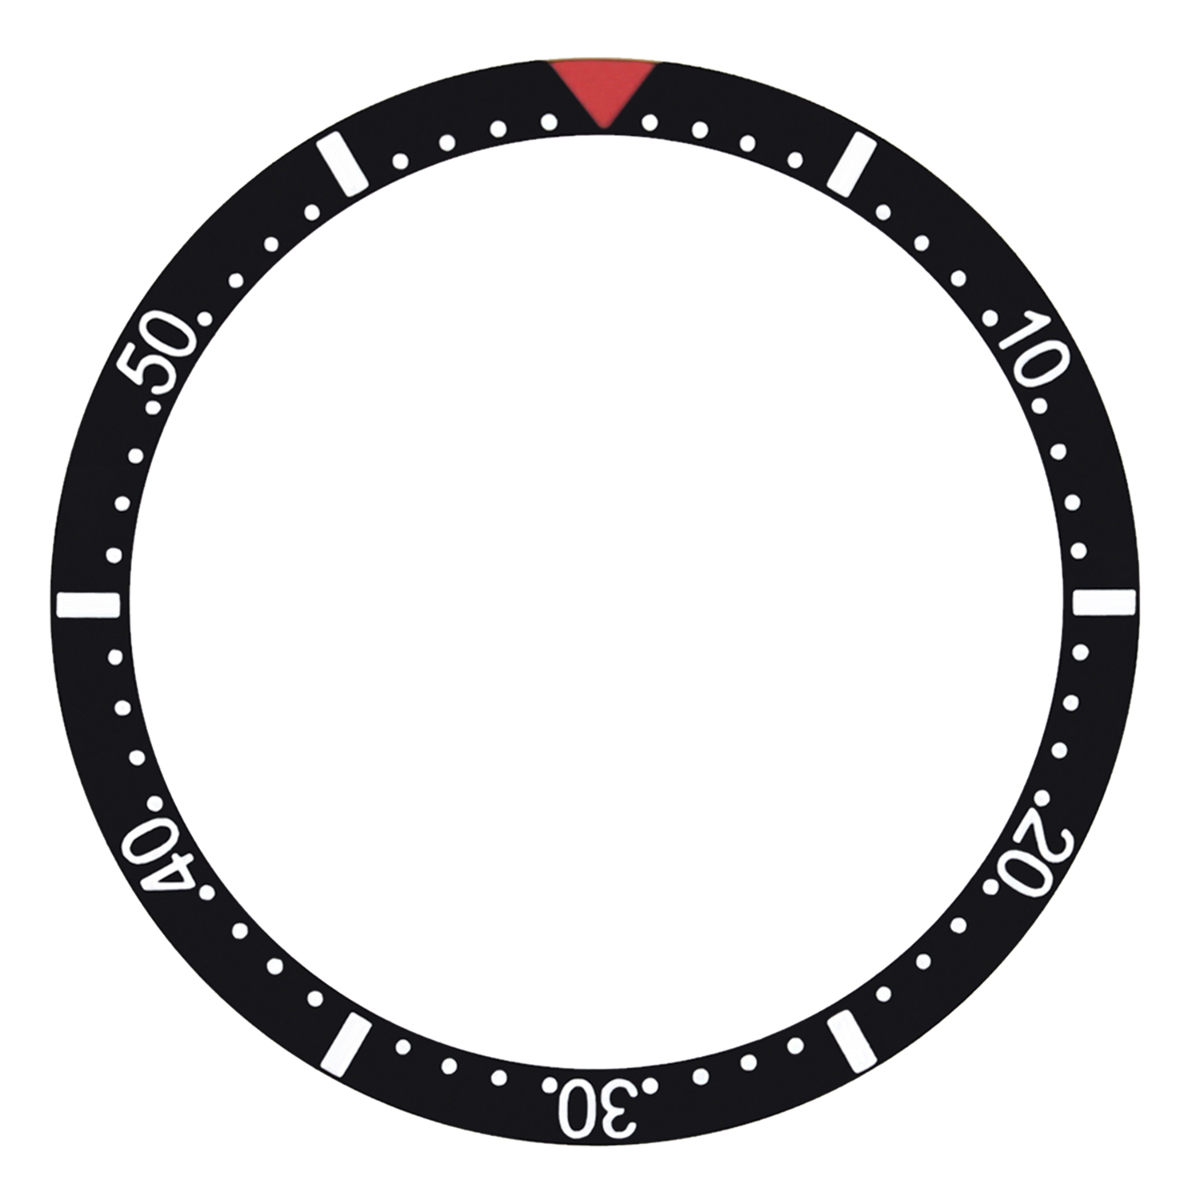 REPLACEMENT BEZEL INSERT BLACK WITH RED TRIANGLE FOR WATCH 37.50MM X 30.50MM